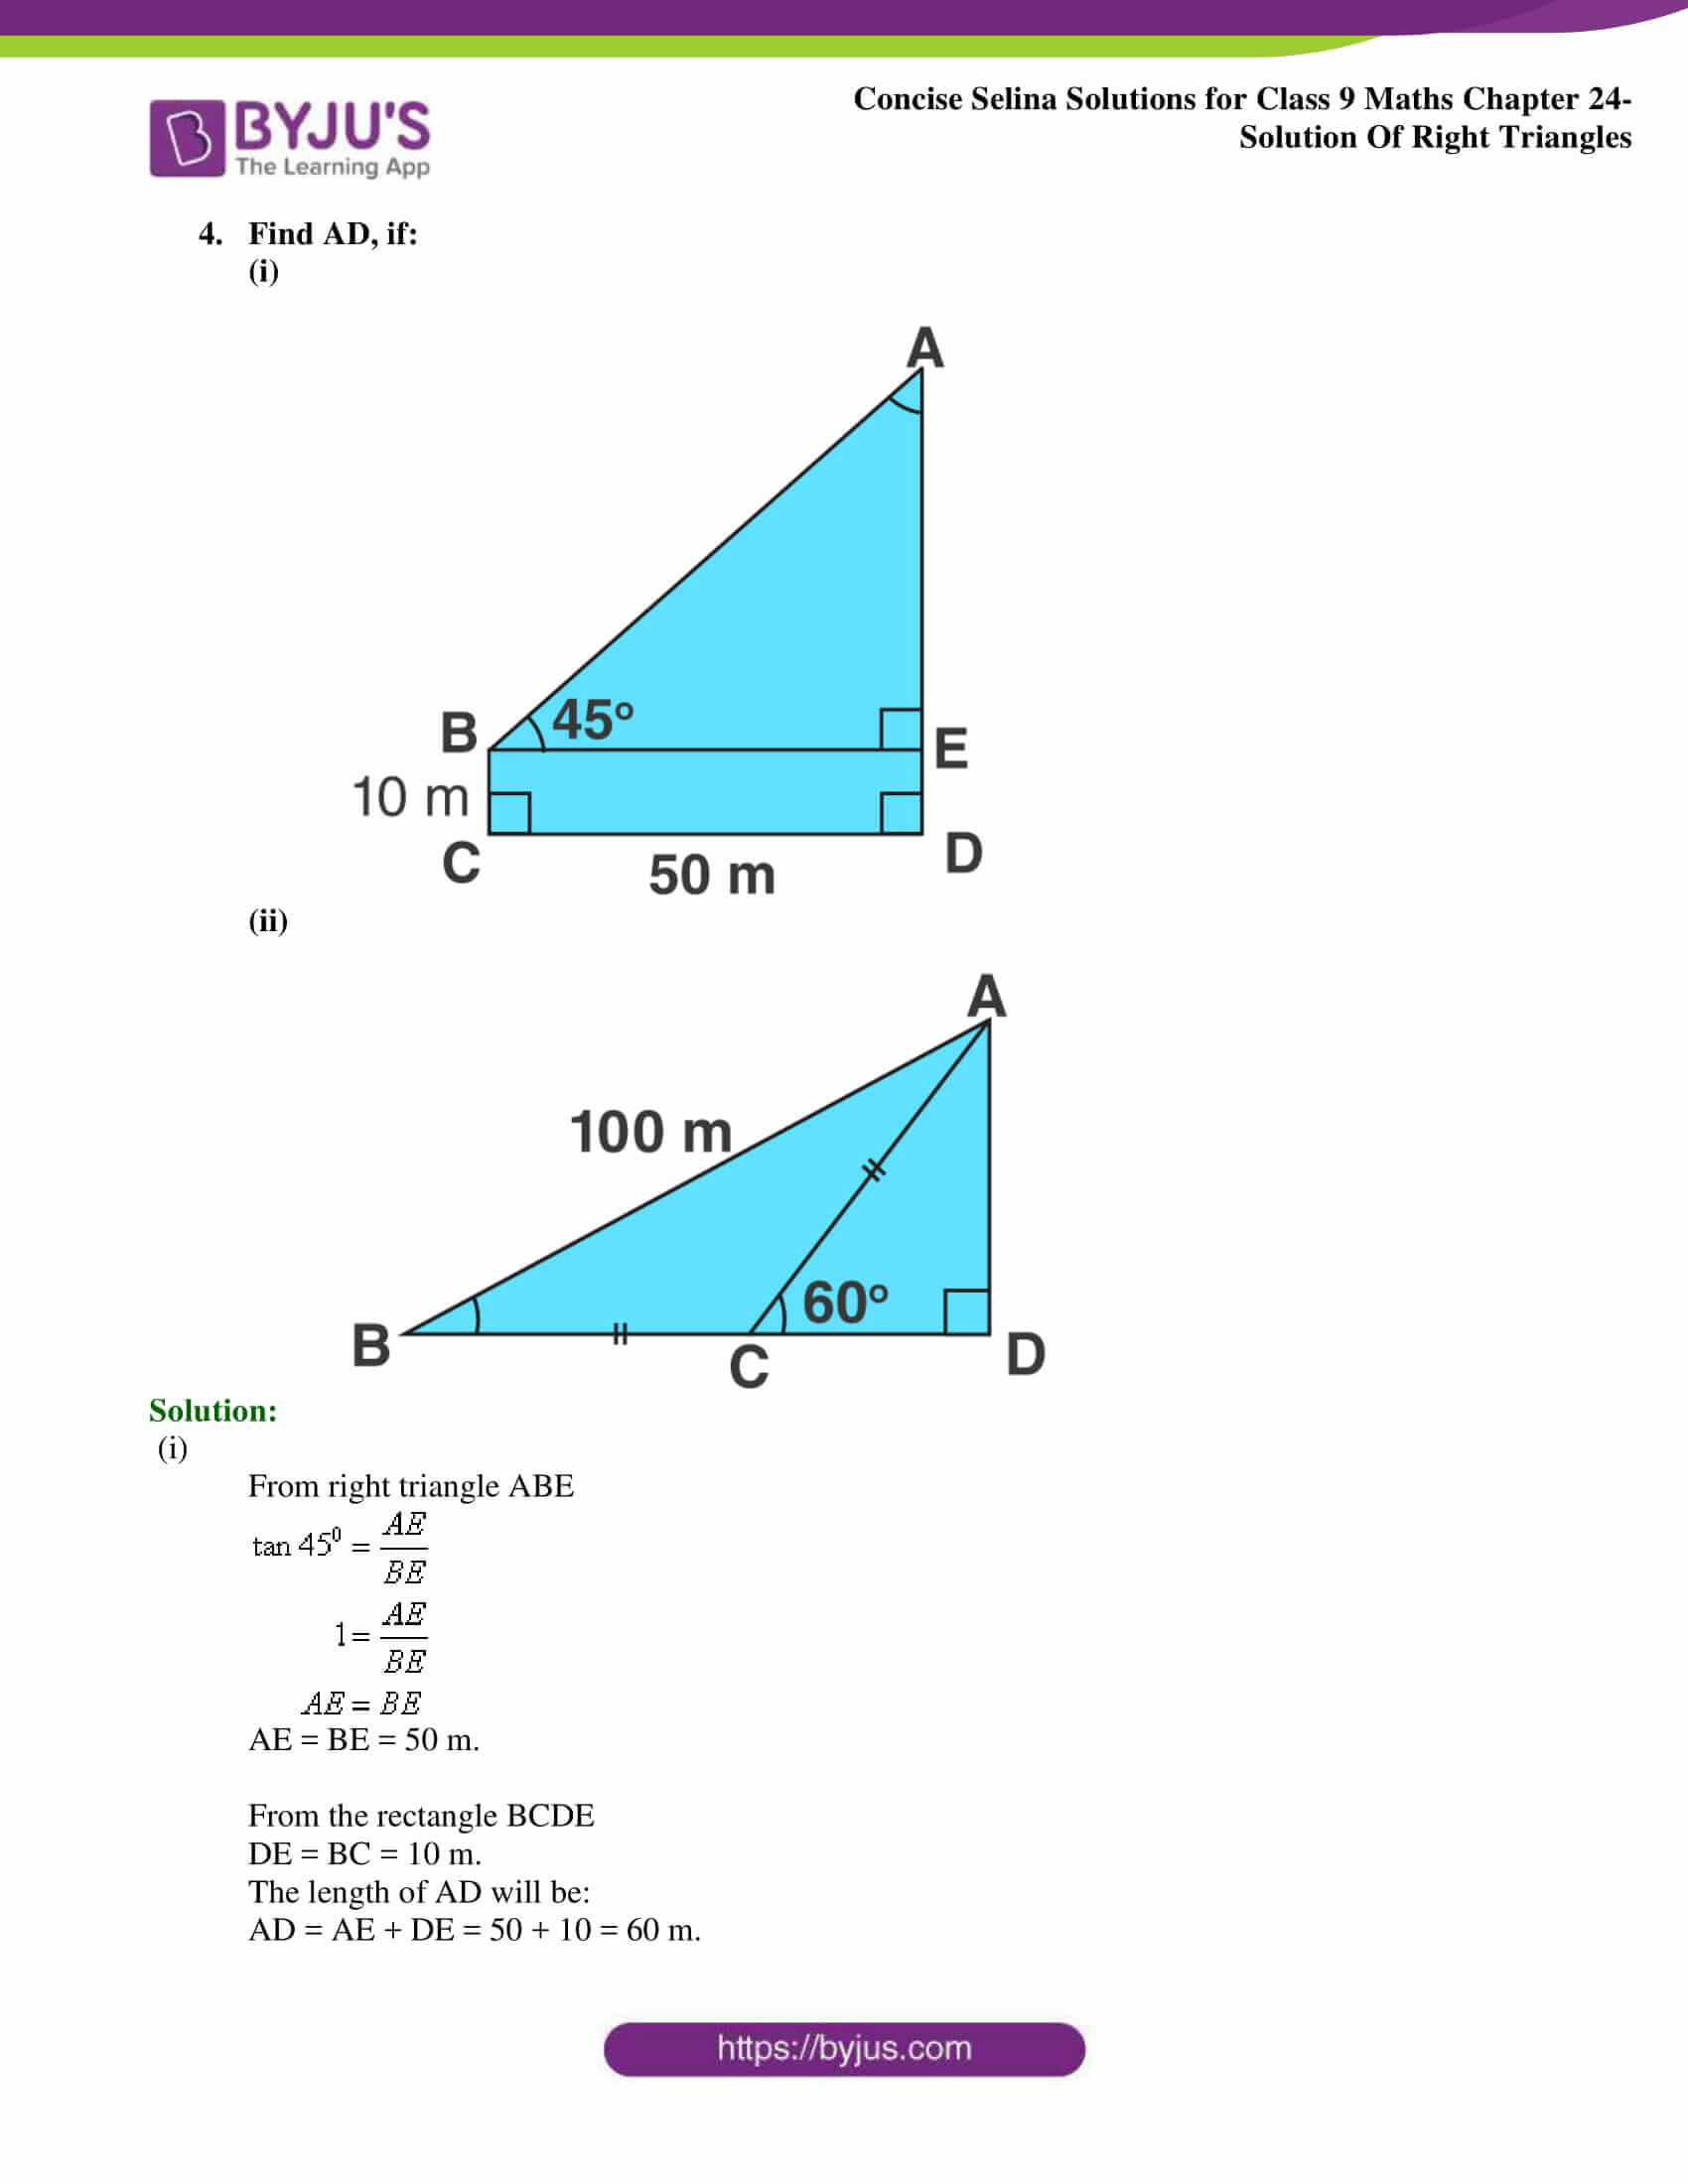 Concise Selina Solutions Class 9 Maths Chapter 24 Solution Of Right Triangles part 05